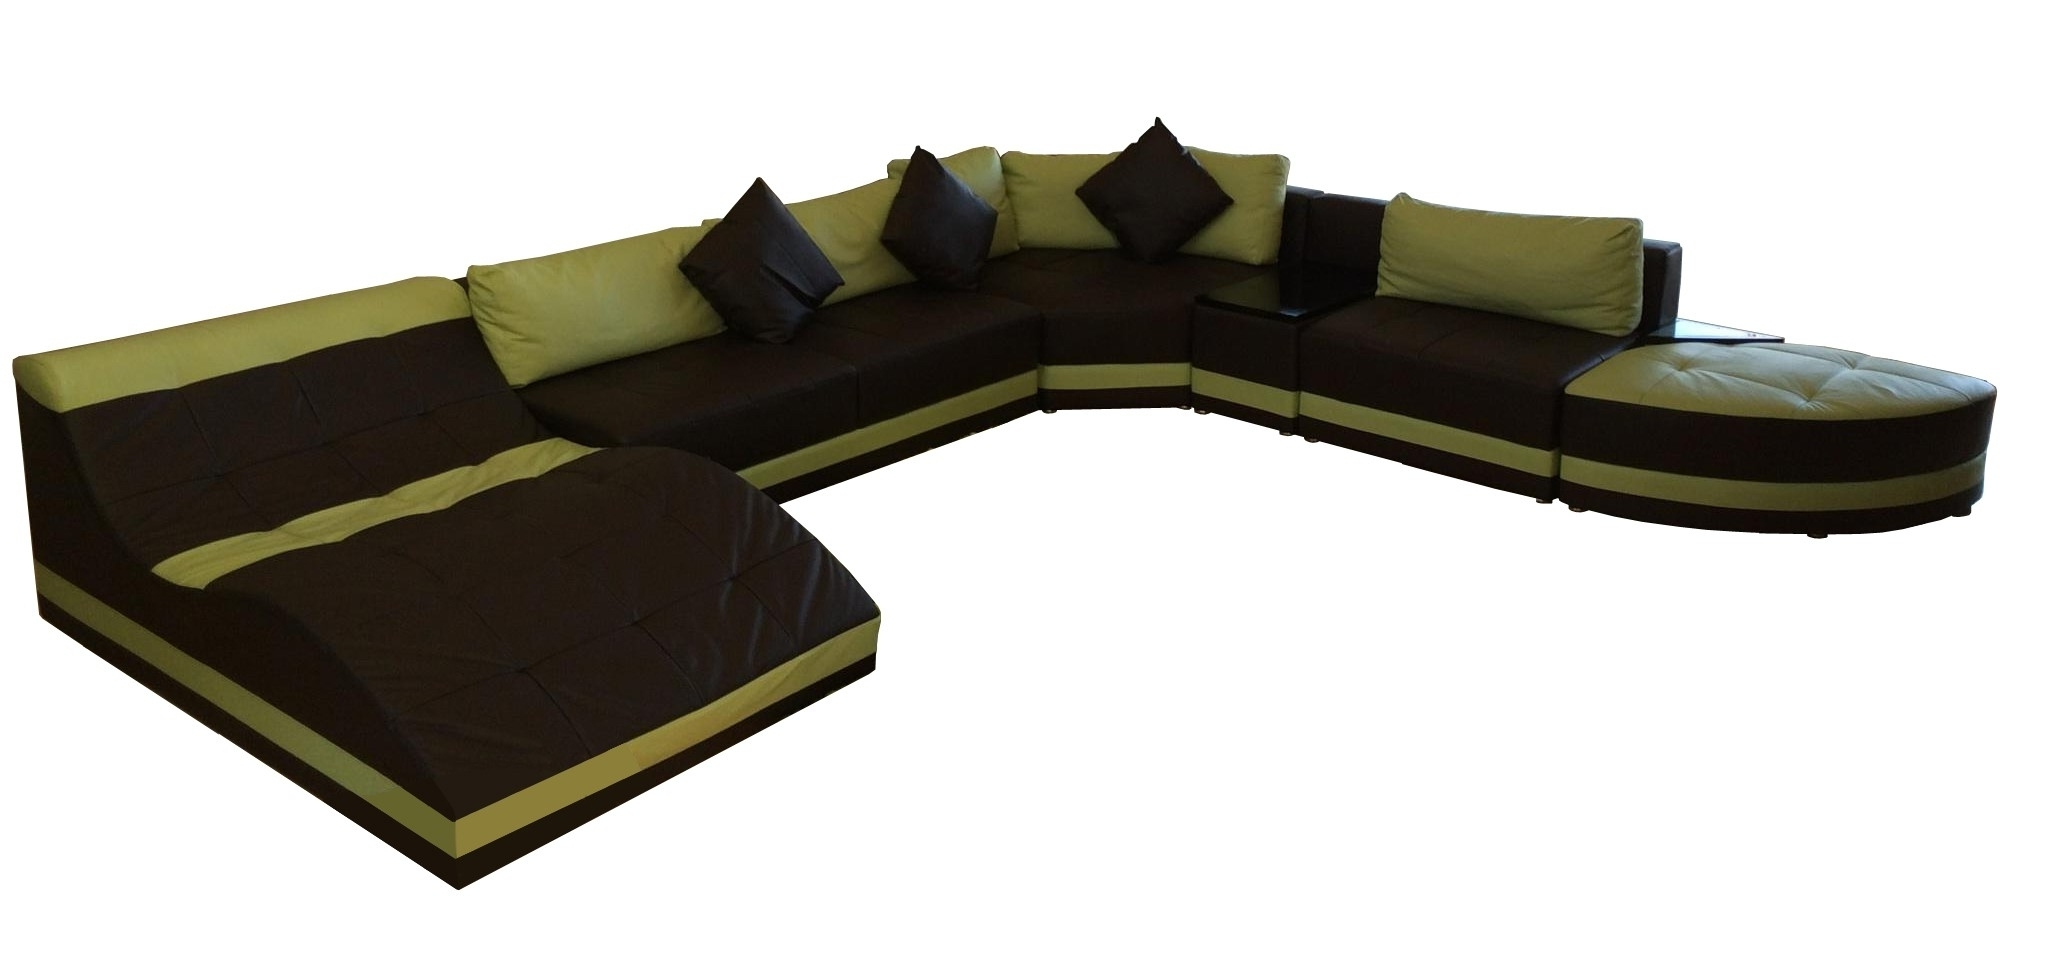 Extra Large Sectional Sofas With Chaise With Most Up To Date Extra Large Sectional Sofas With Chaise (View 14 of 15)